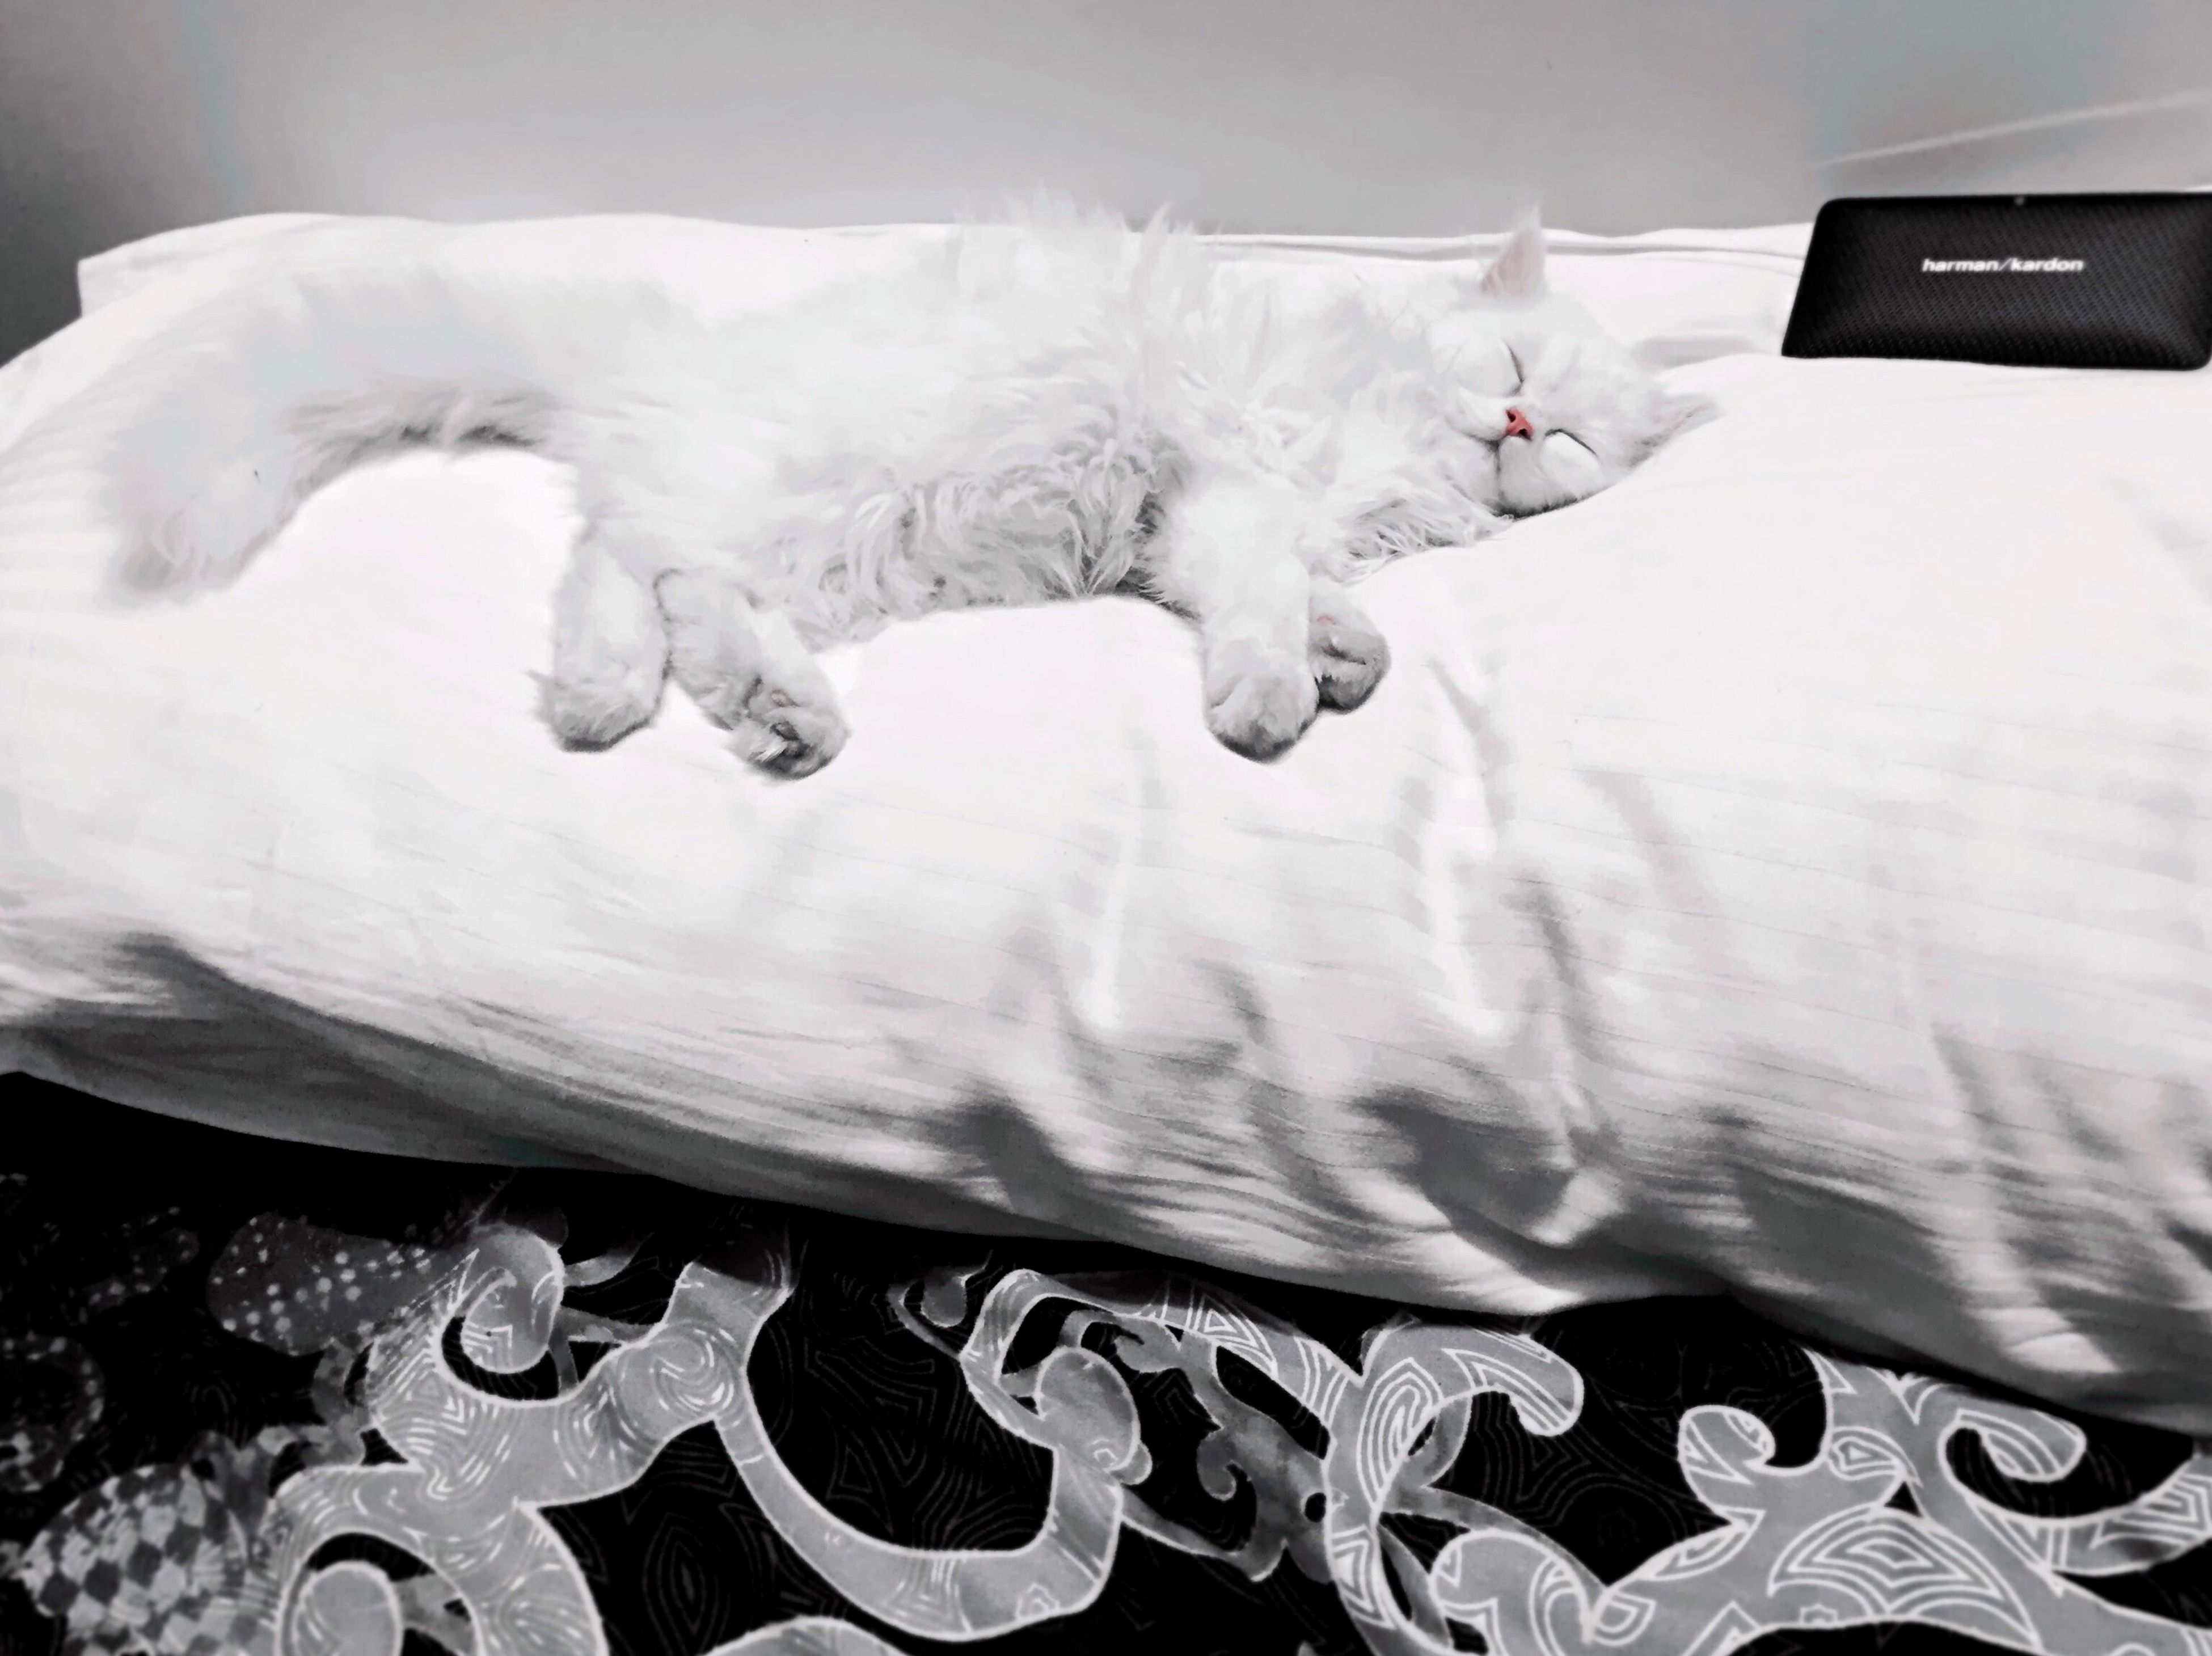 indoors, domestic animals, pets, animal themes, domestic cat, mammal, cat, one animal, relaxation, close-up, feline, no people, high angle view, bed, home interior, white color, sleeping, resting, lying down, eyes closed